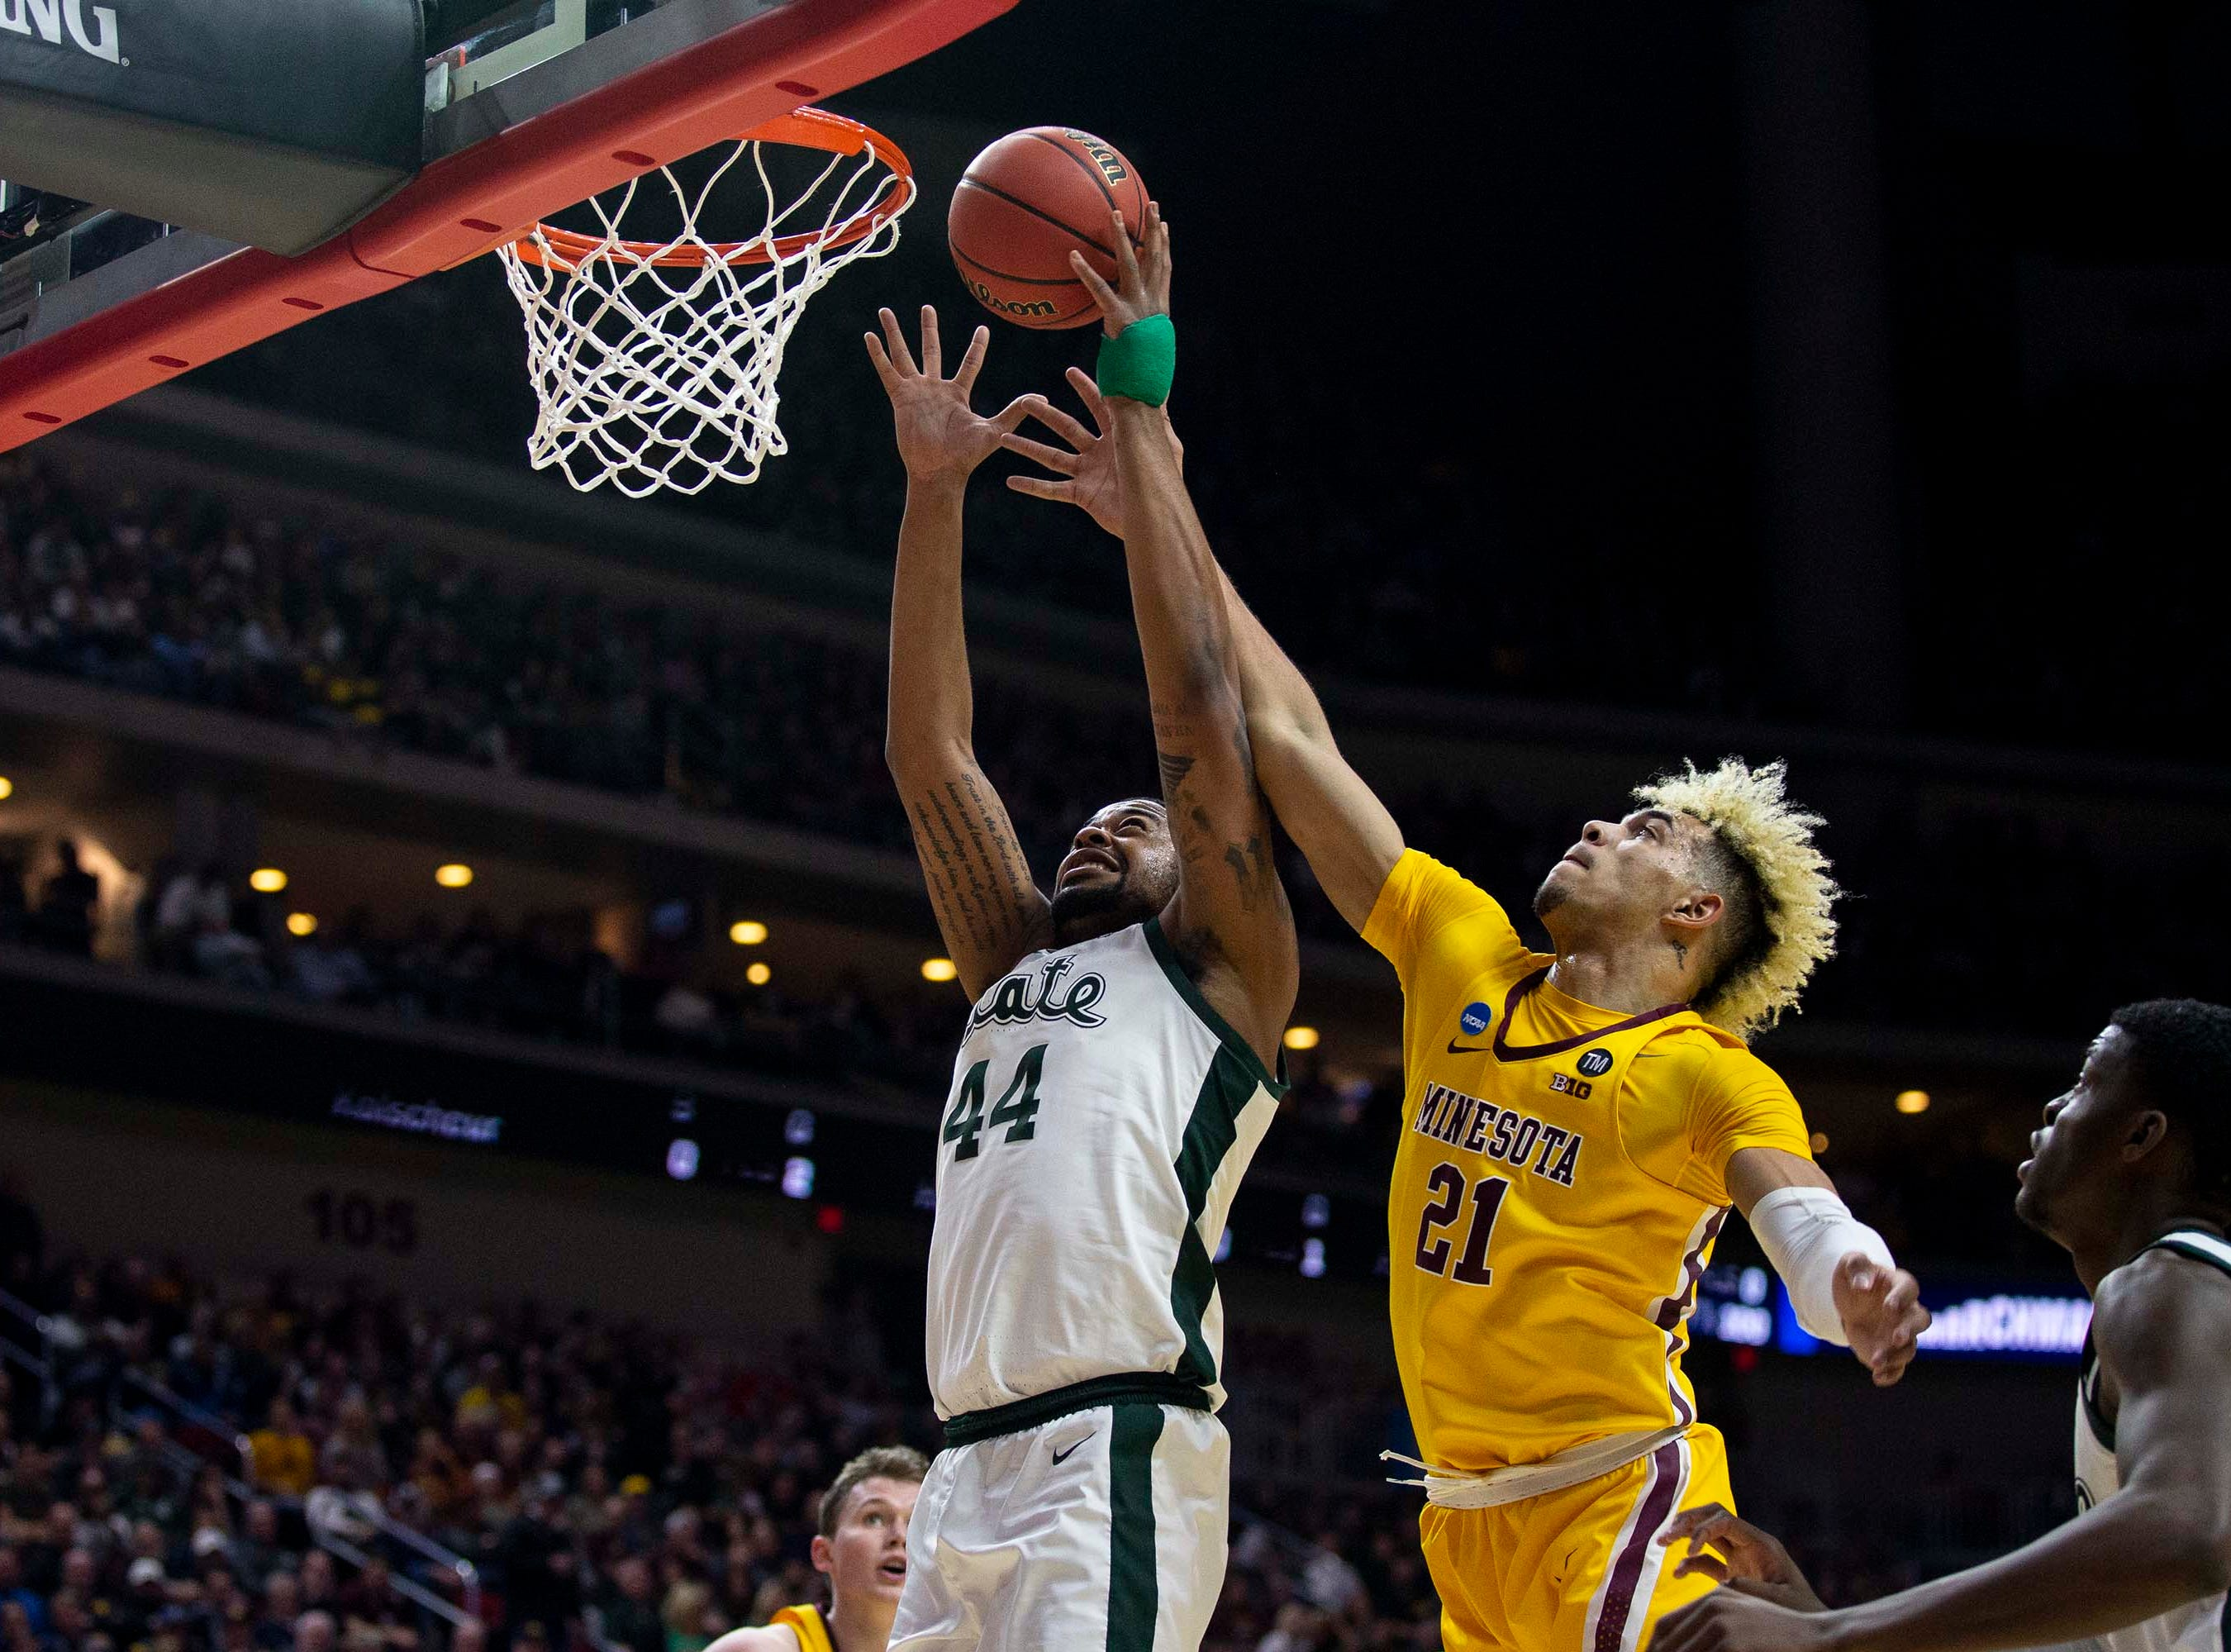 Michigan State's Nick Ward  grabs a rebound during the NCAA Tournament second-round match-up between Minnesota and Michigan State on Saturday, March 23, 2019, in Wells Fargo Arena in Des Moines, Iowa.